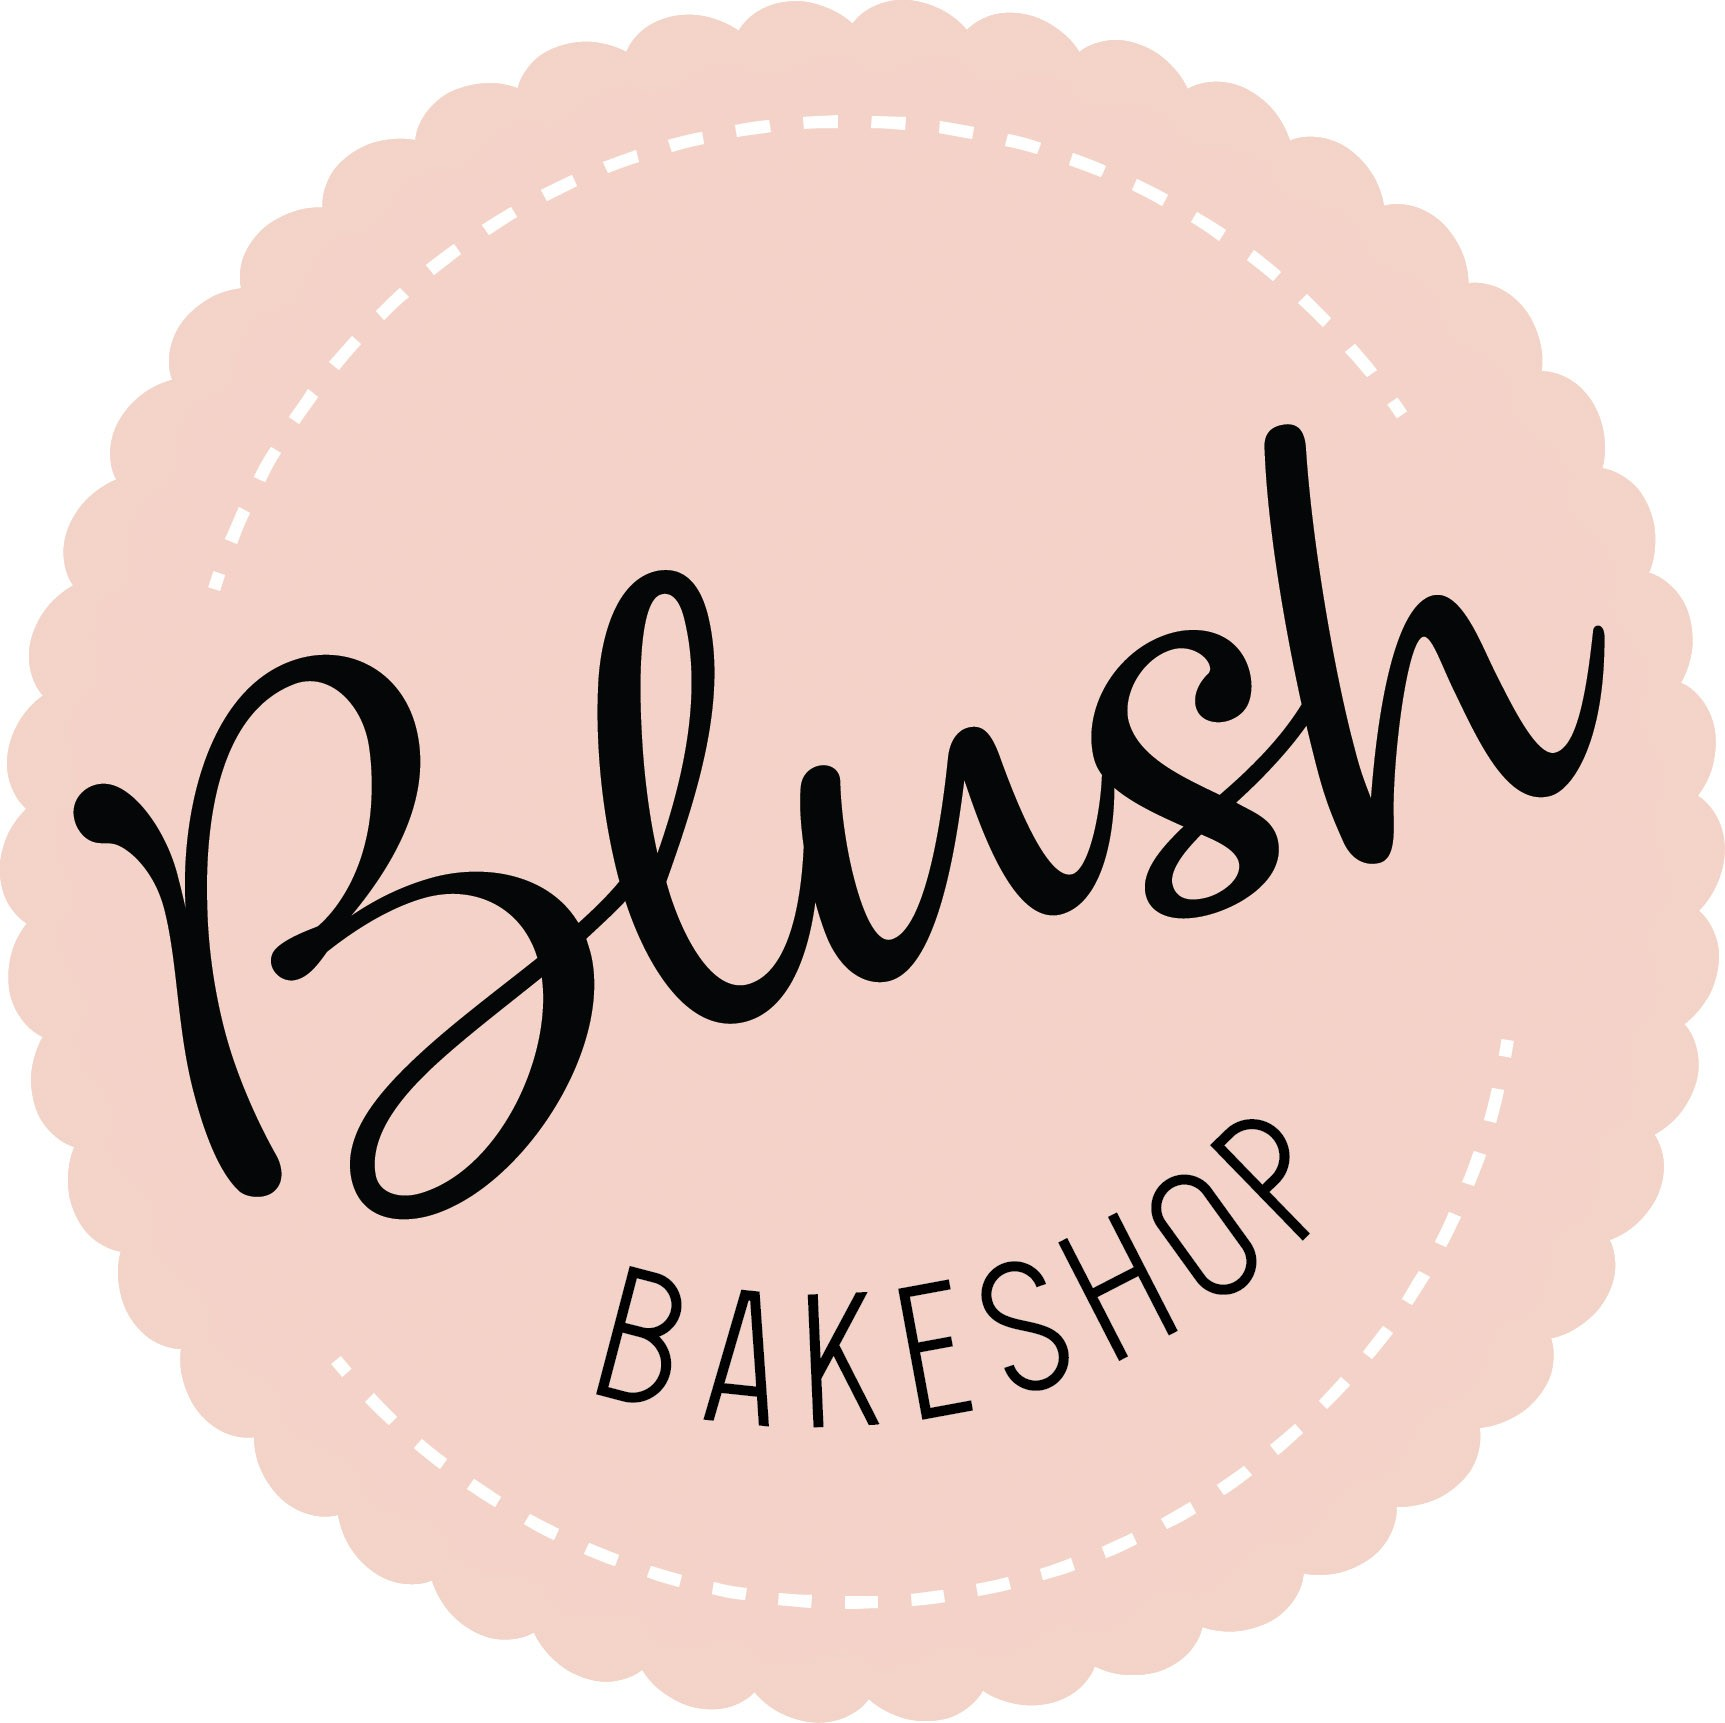 Blush Bakeshop LLC